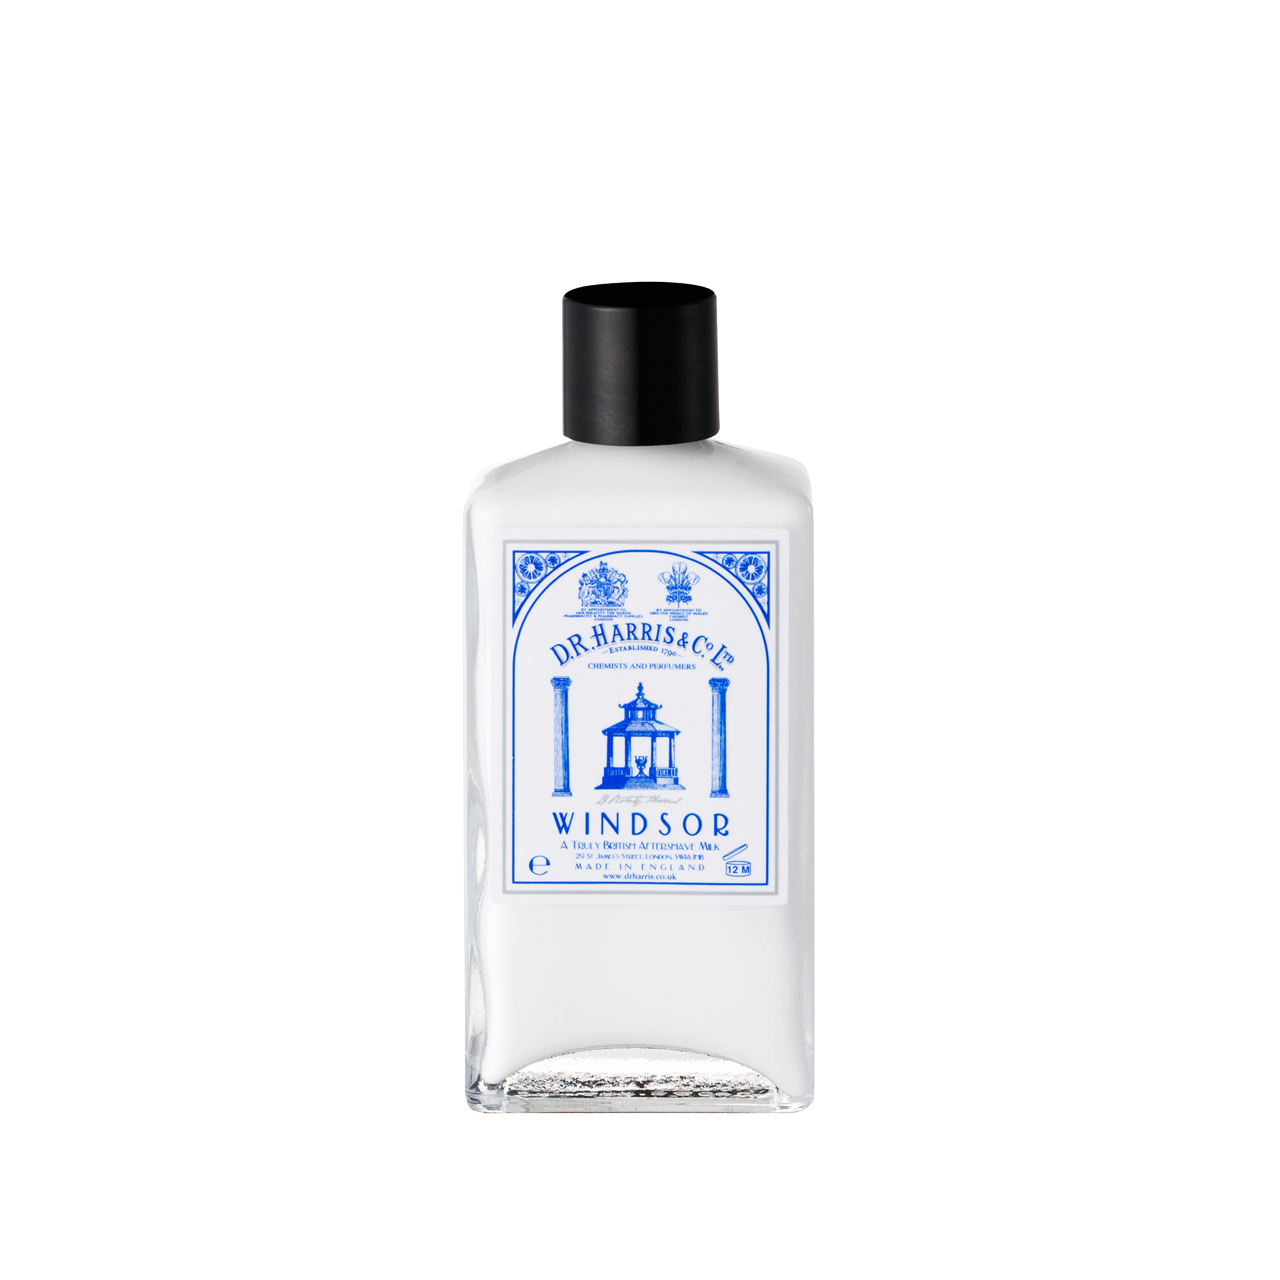 Windsor - After Shave Balm